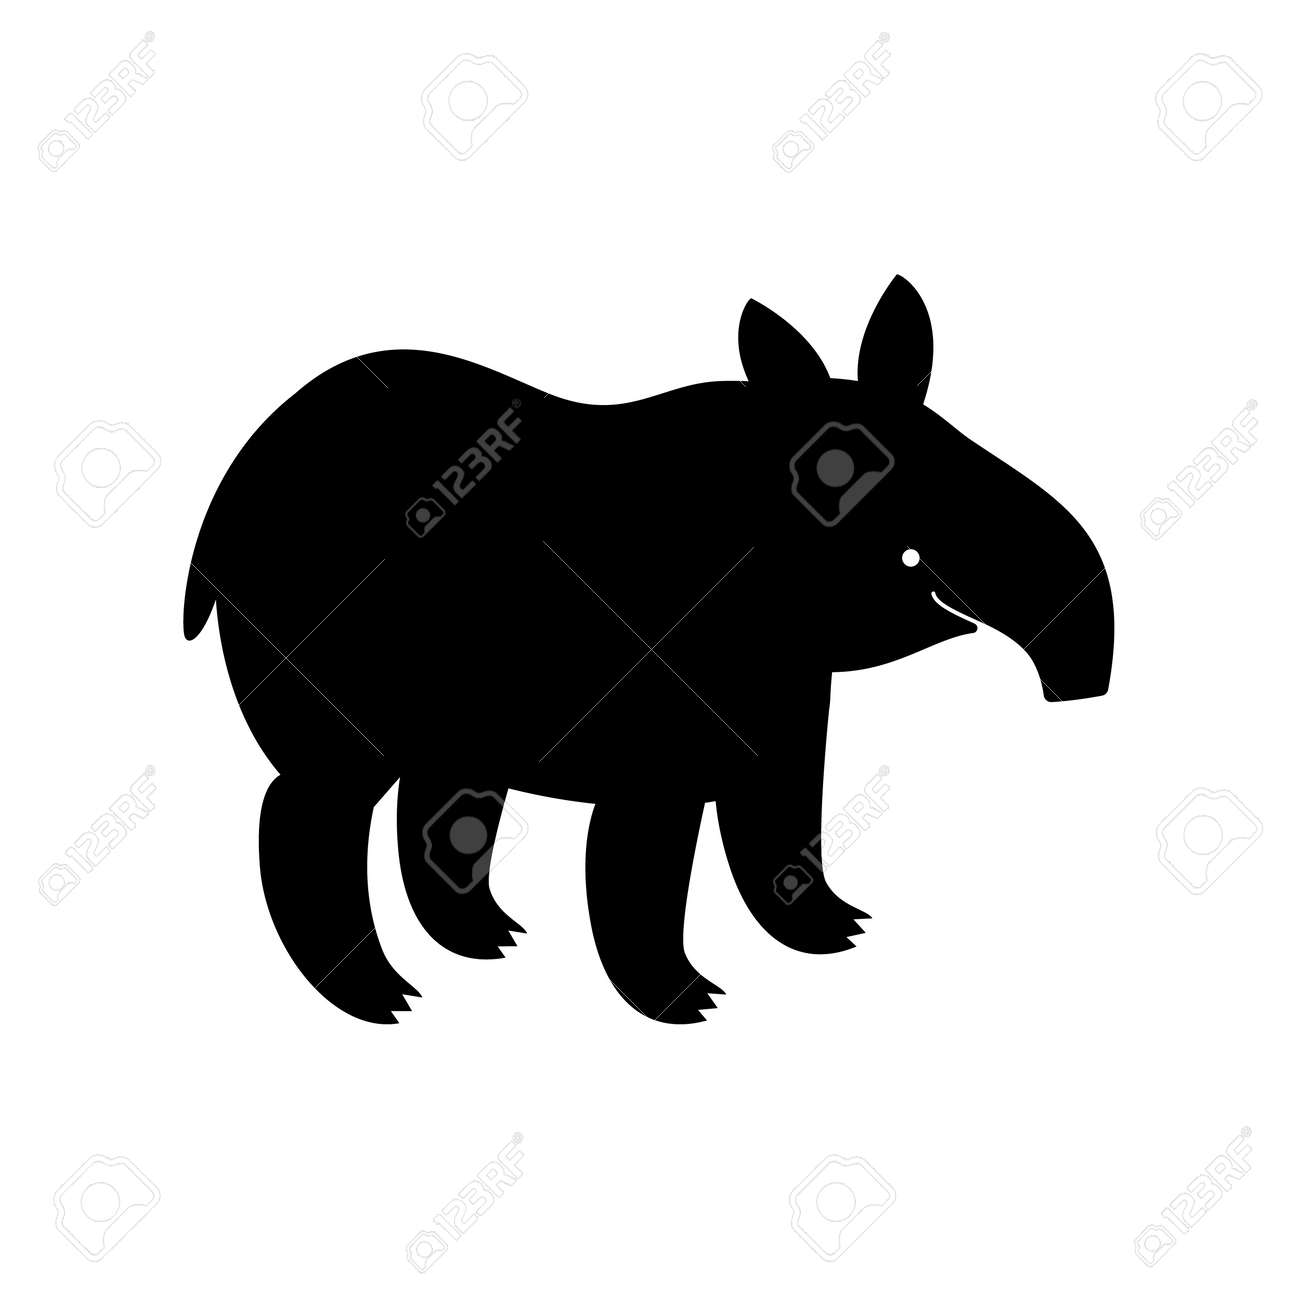 Tapir, animal, vector path for laser cutting, shadow black color, cute childish flat style. - 157901523